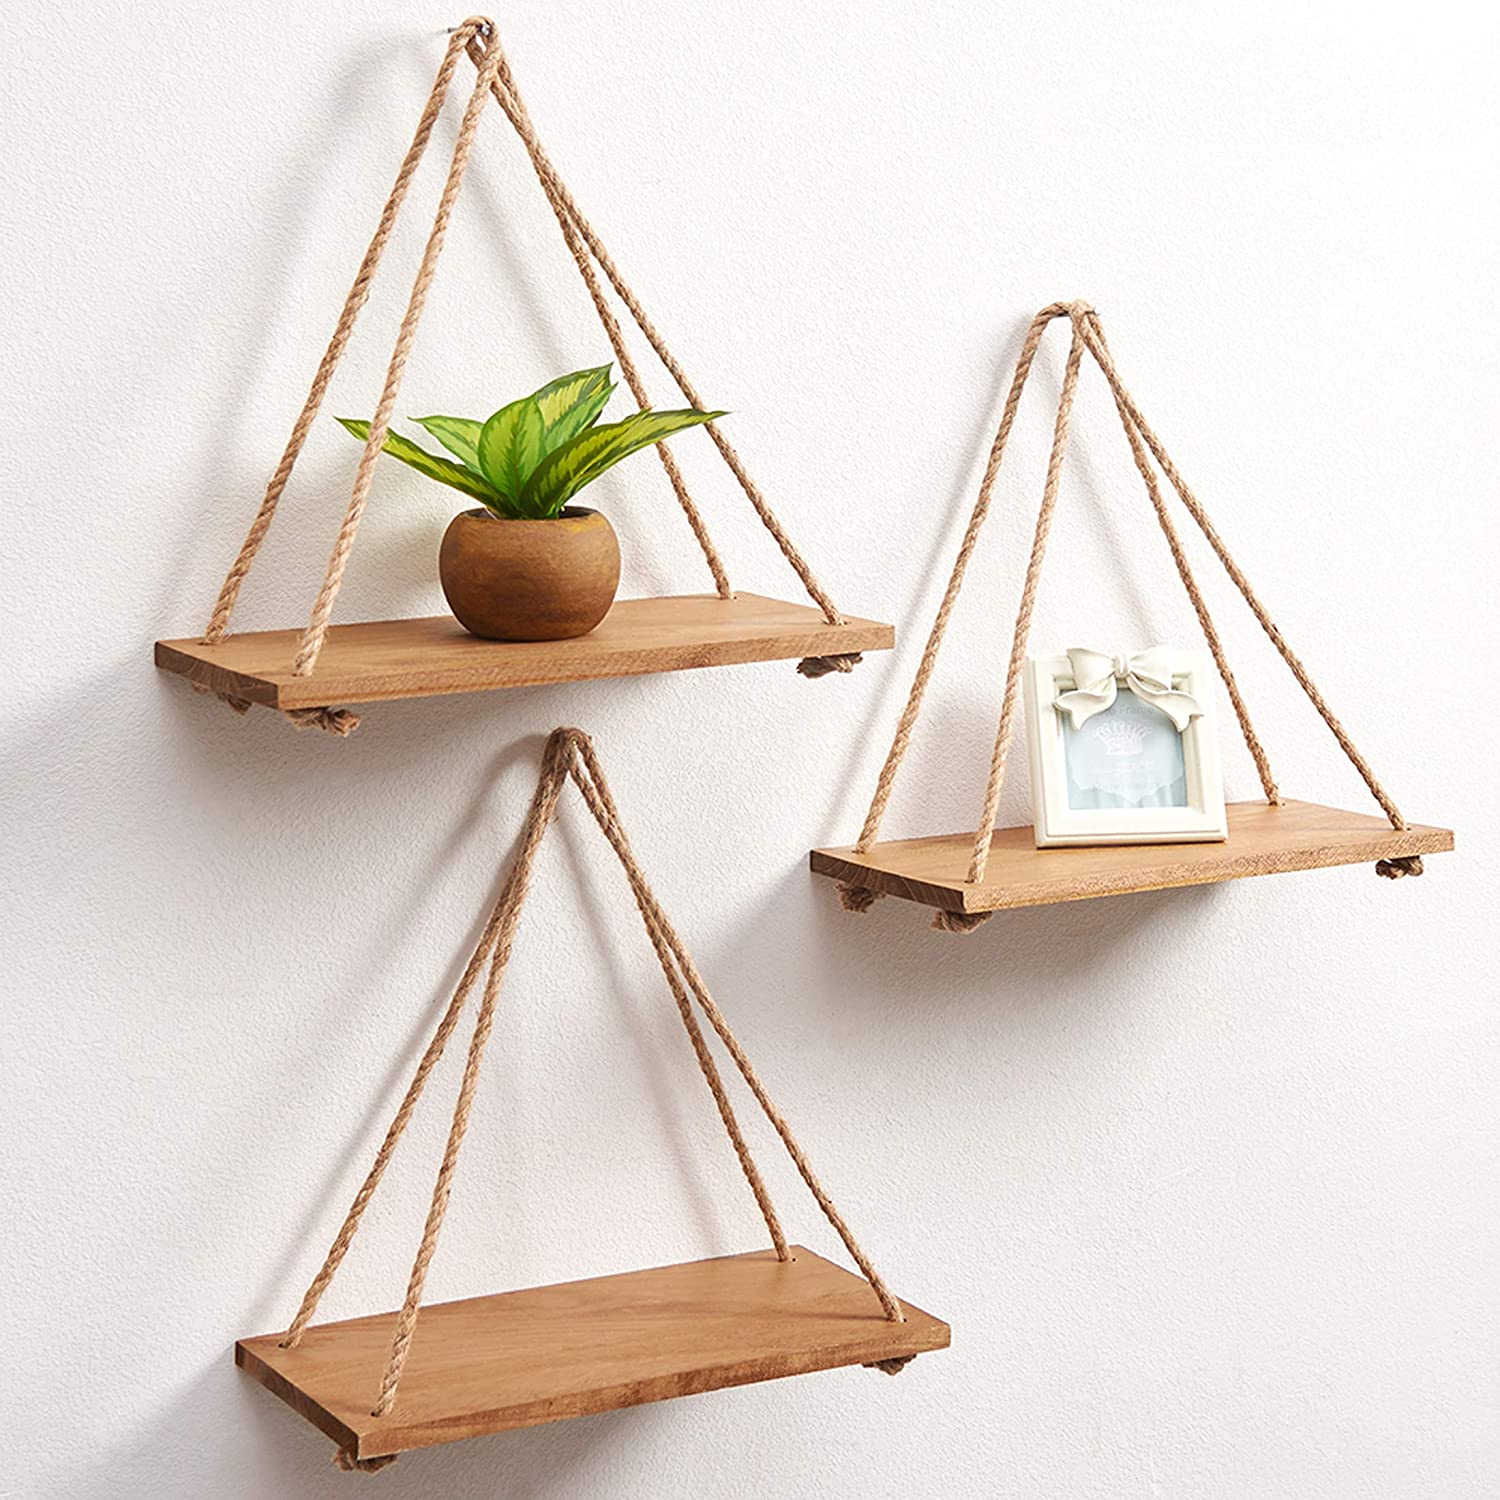 SAND MINE Set of 3 Wood Wall Hanging Shelf, Wood Floating Shelves, Hanging Swing Rope Shelves, Rustic Rope Hanging Shelves, Rustic Wall Decor Swing Shelf, Wall Display Shelves for Living Room Bedroom